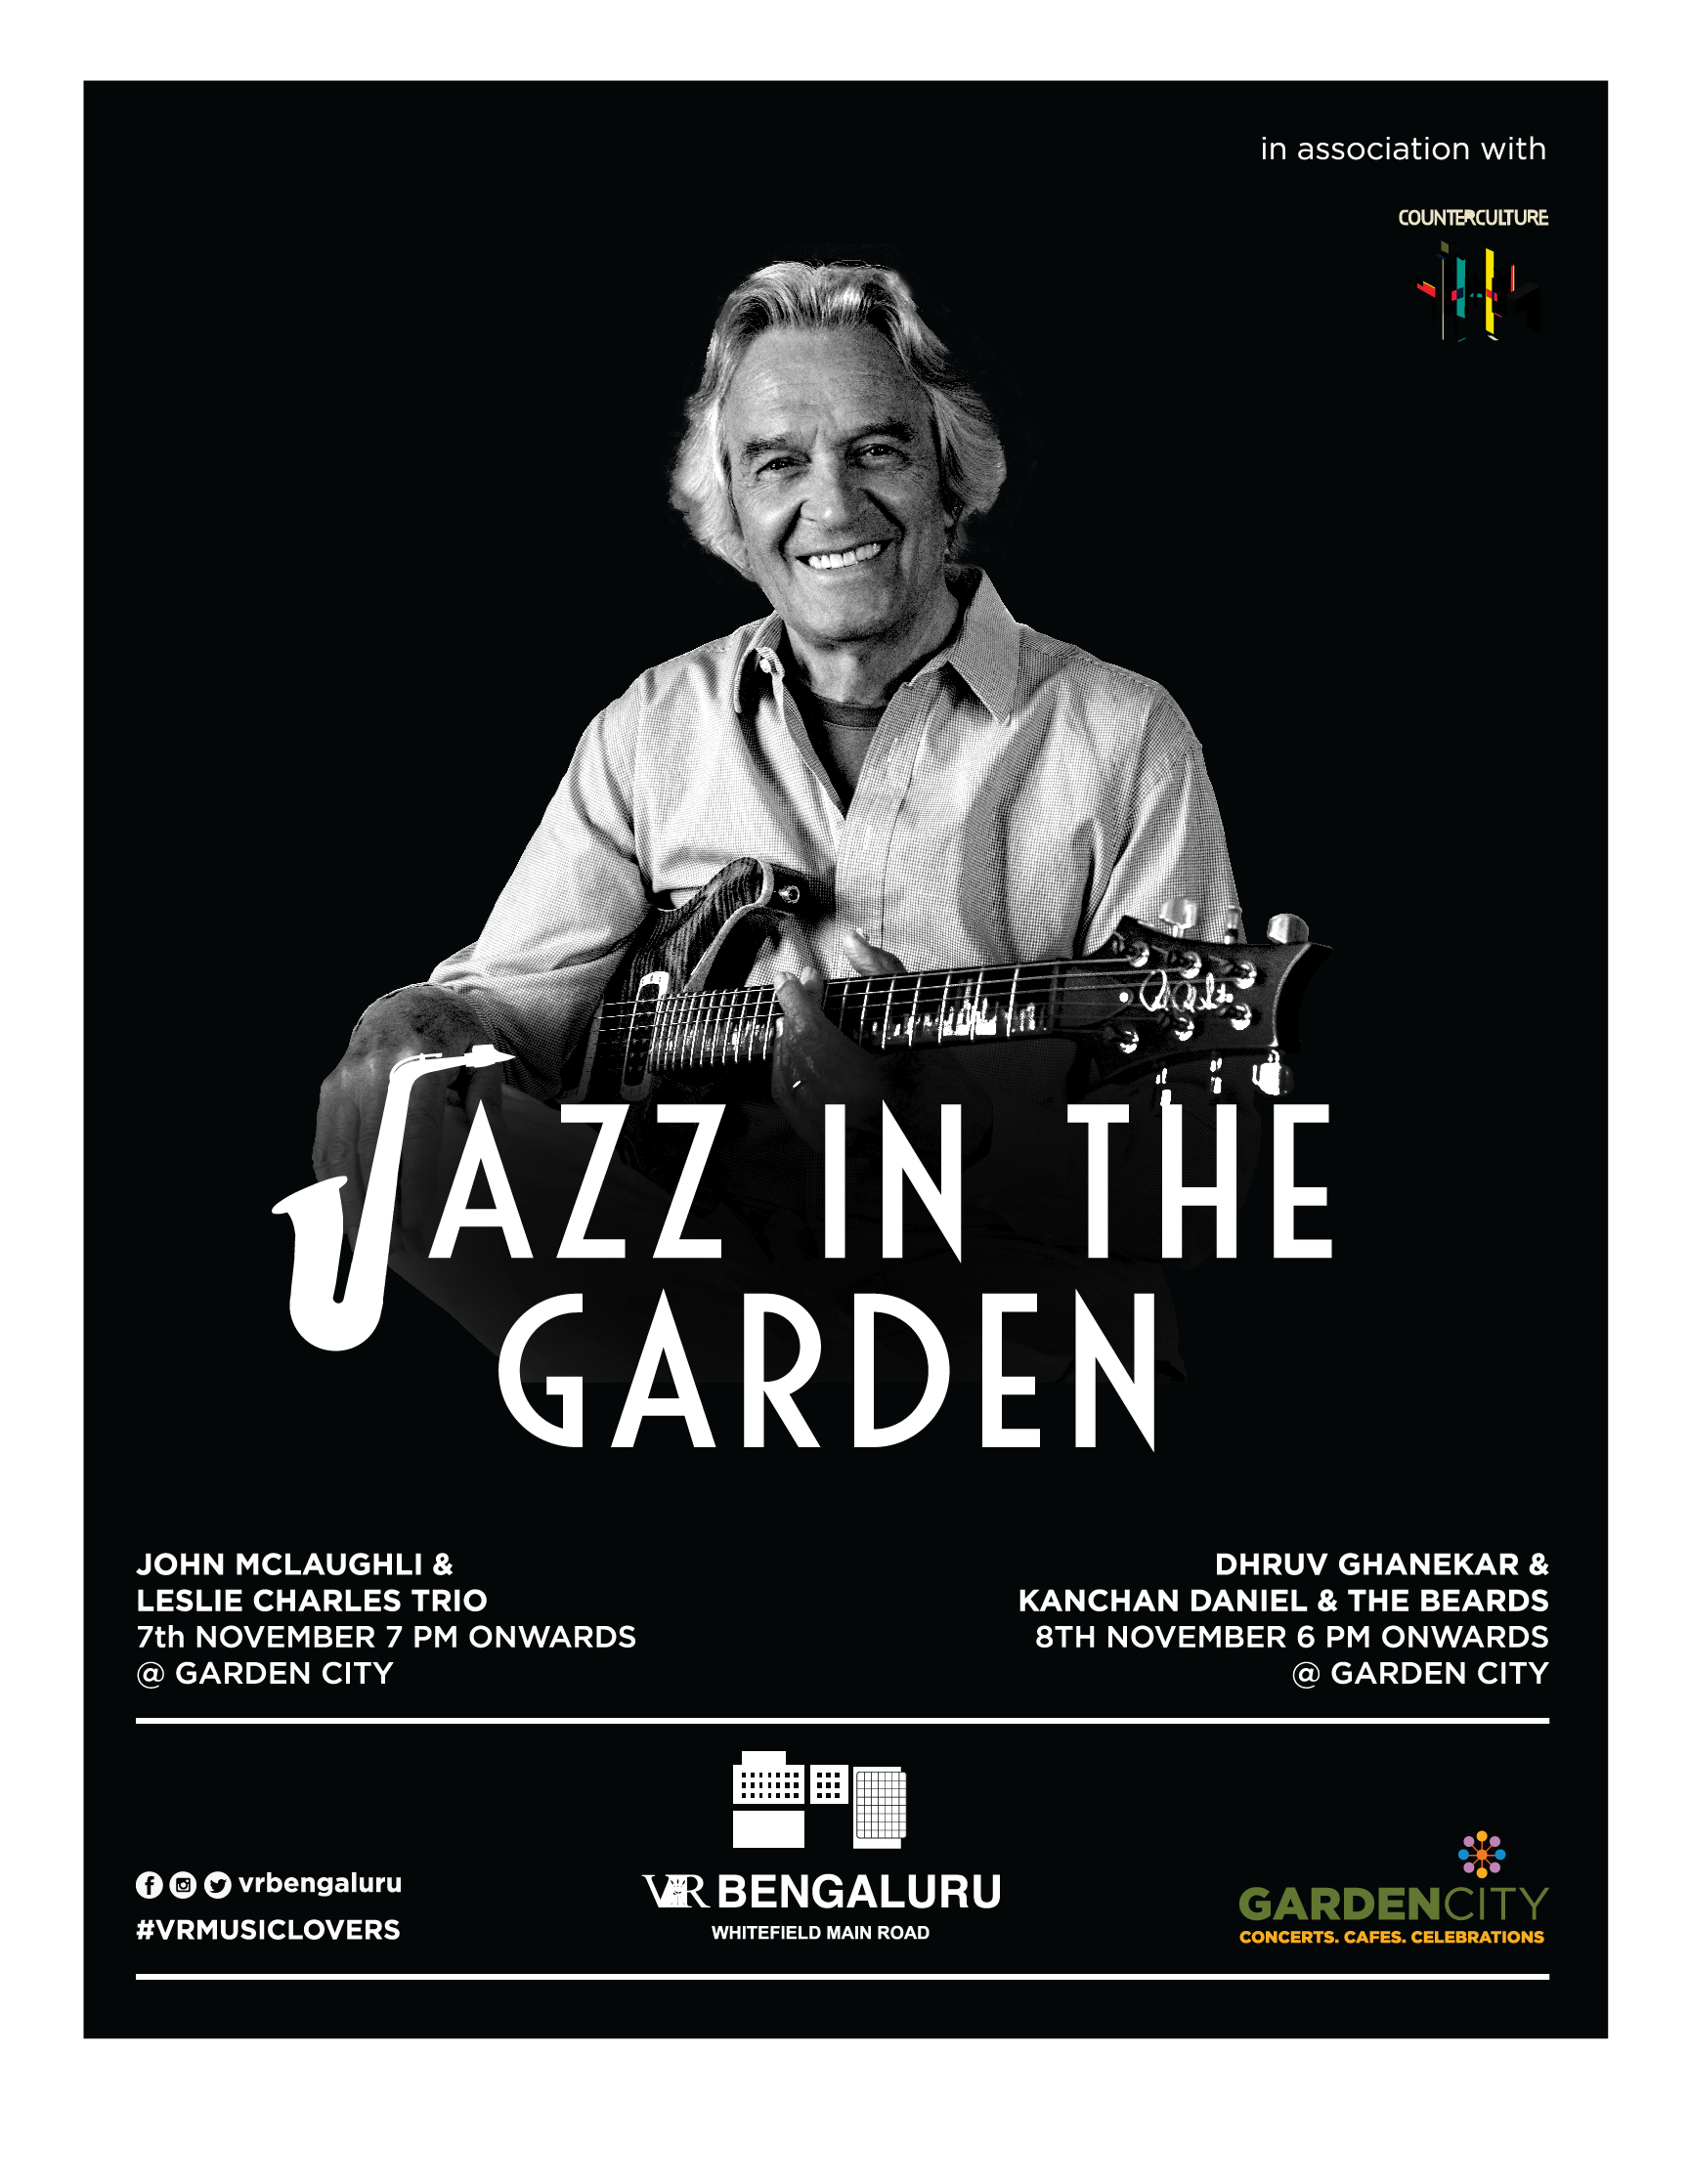 Relish Jazz in the Garden, only @ VR Bengaluru